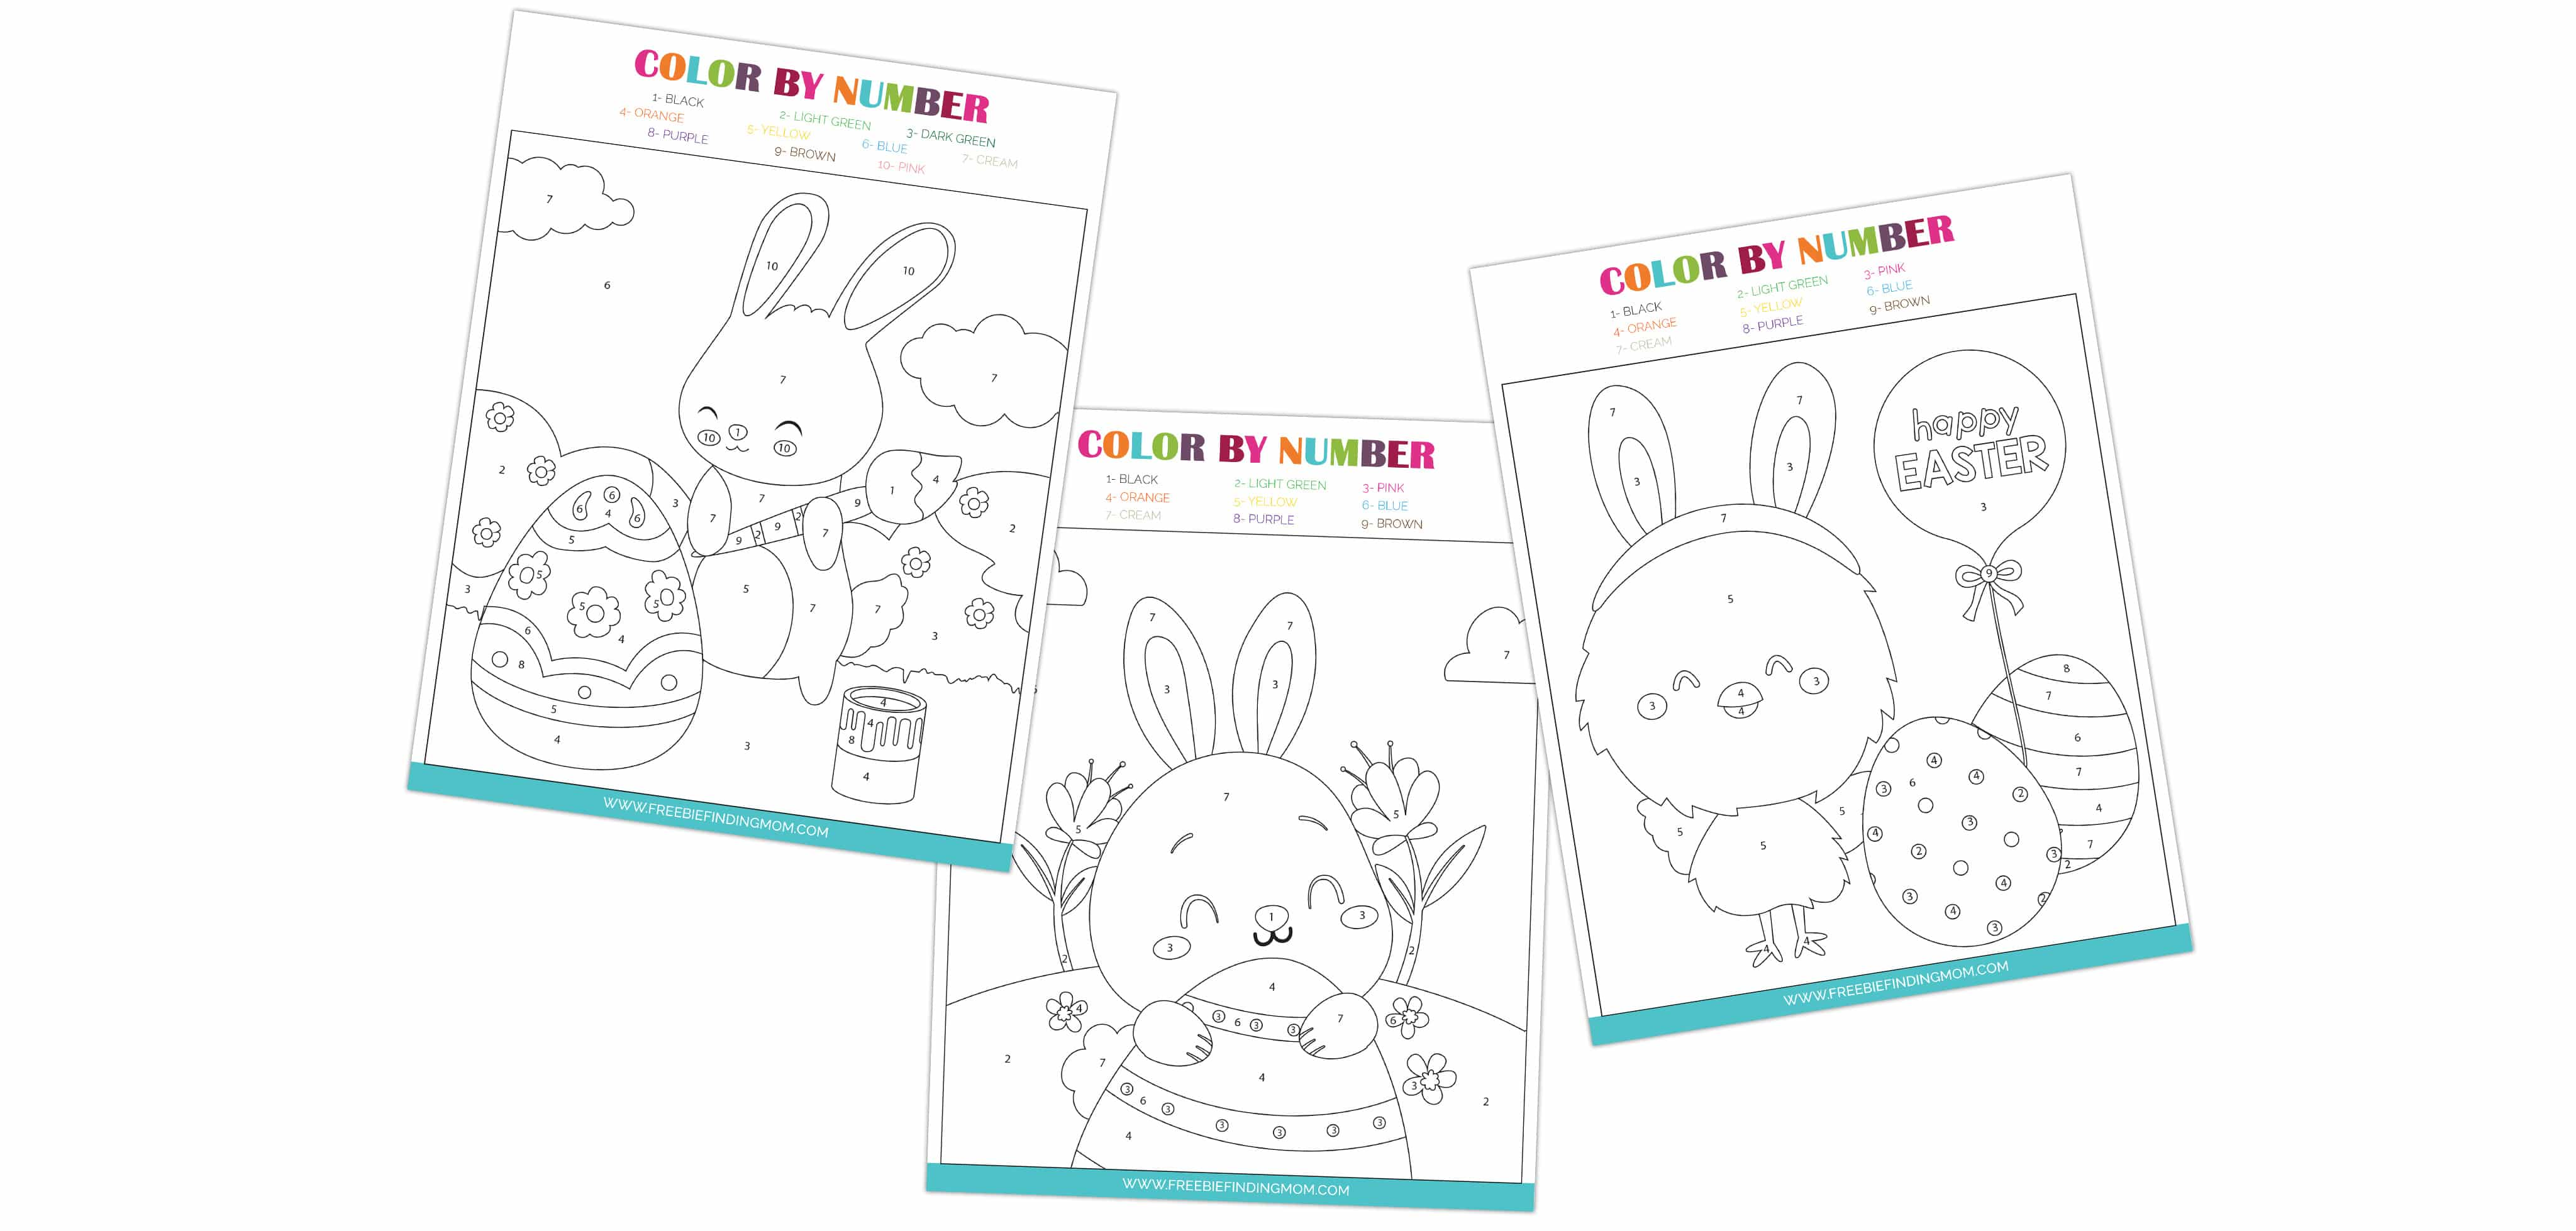 These free Easter color by number printables are a fun and educational way to engage kids during the spring as they eagerly await the arrival of the Easter bunny.